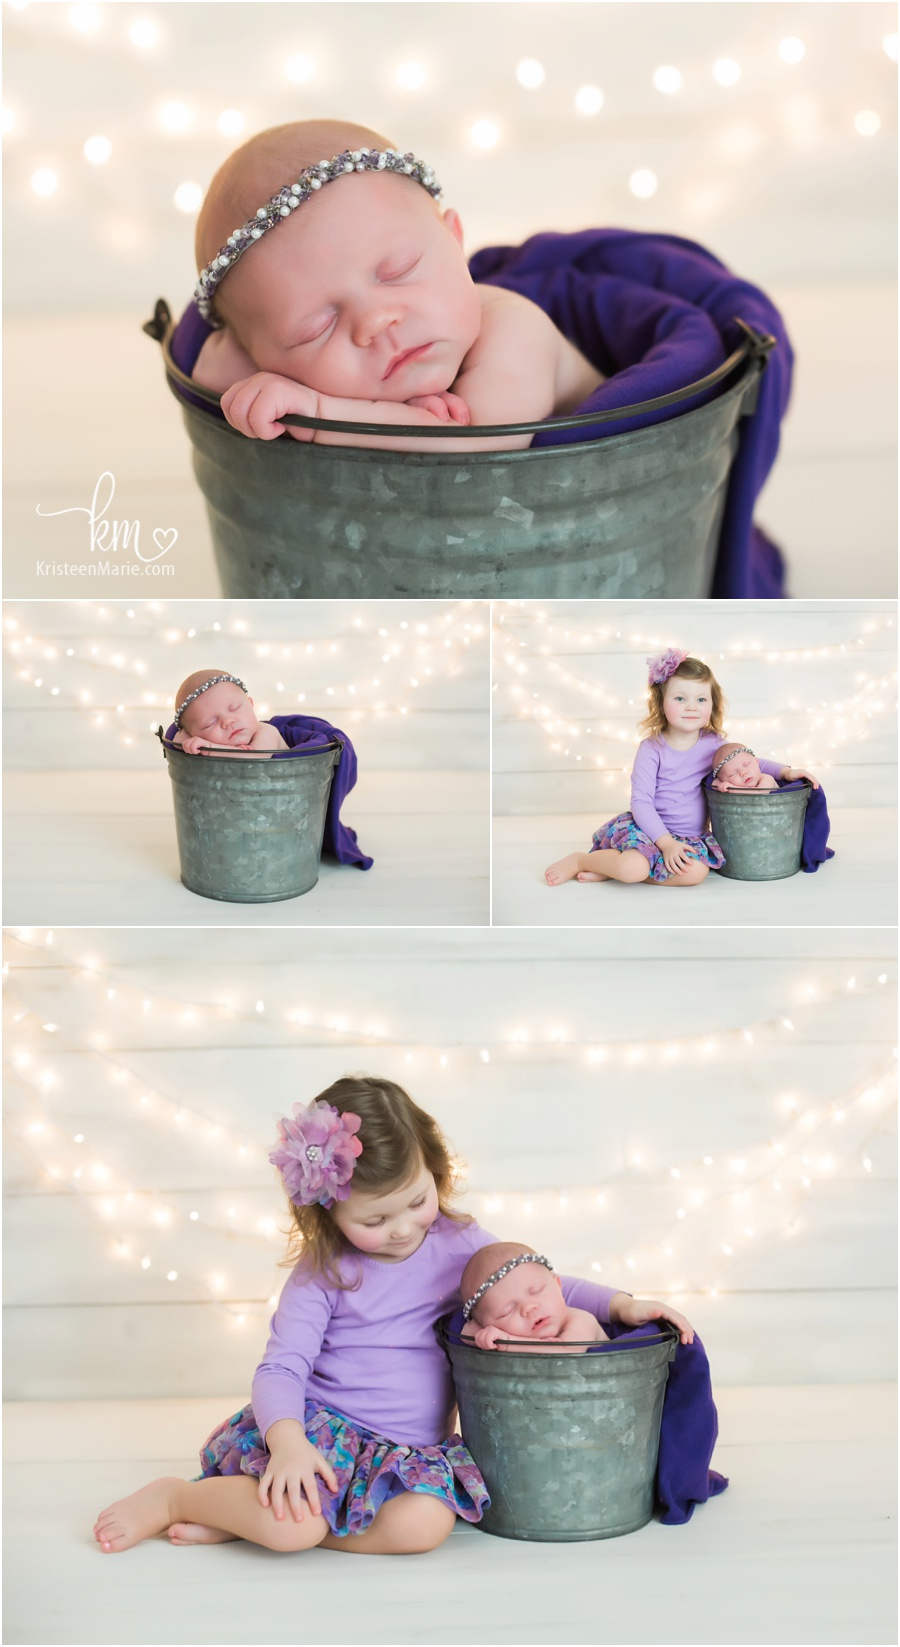 newborn girl in bucket with lights behind her